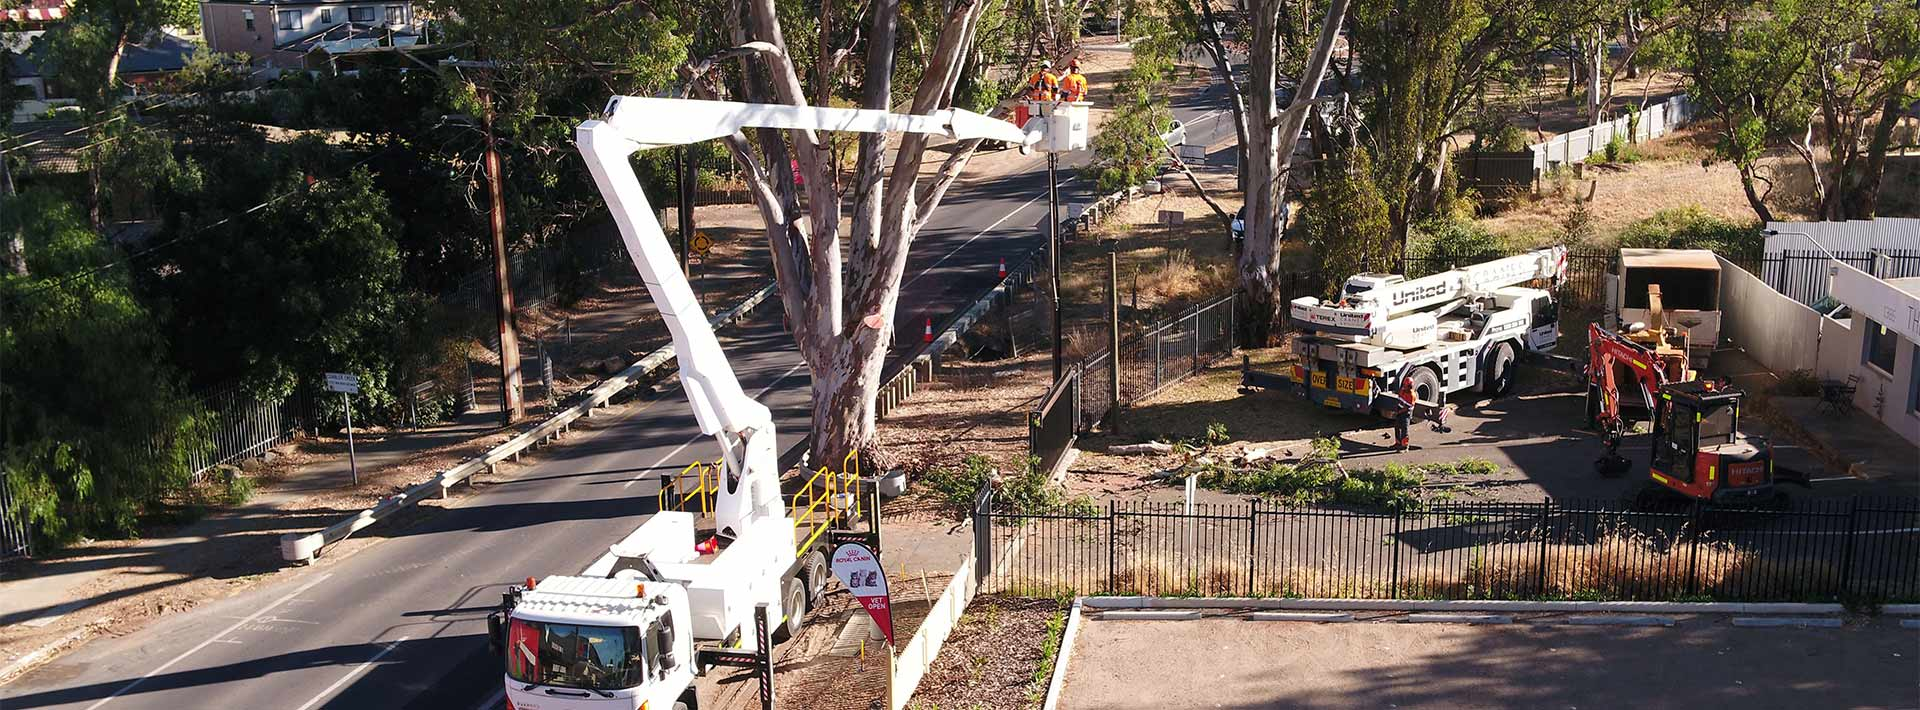 Austral Tree Solutions workers high up in a boom lift